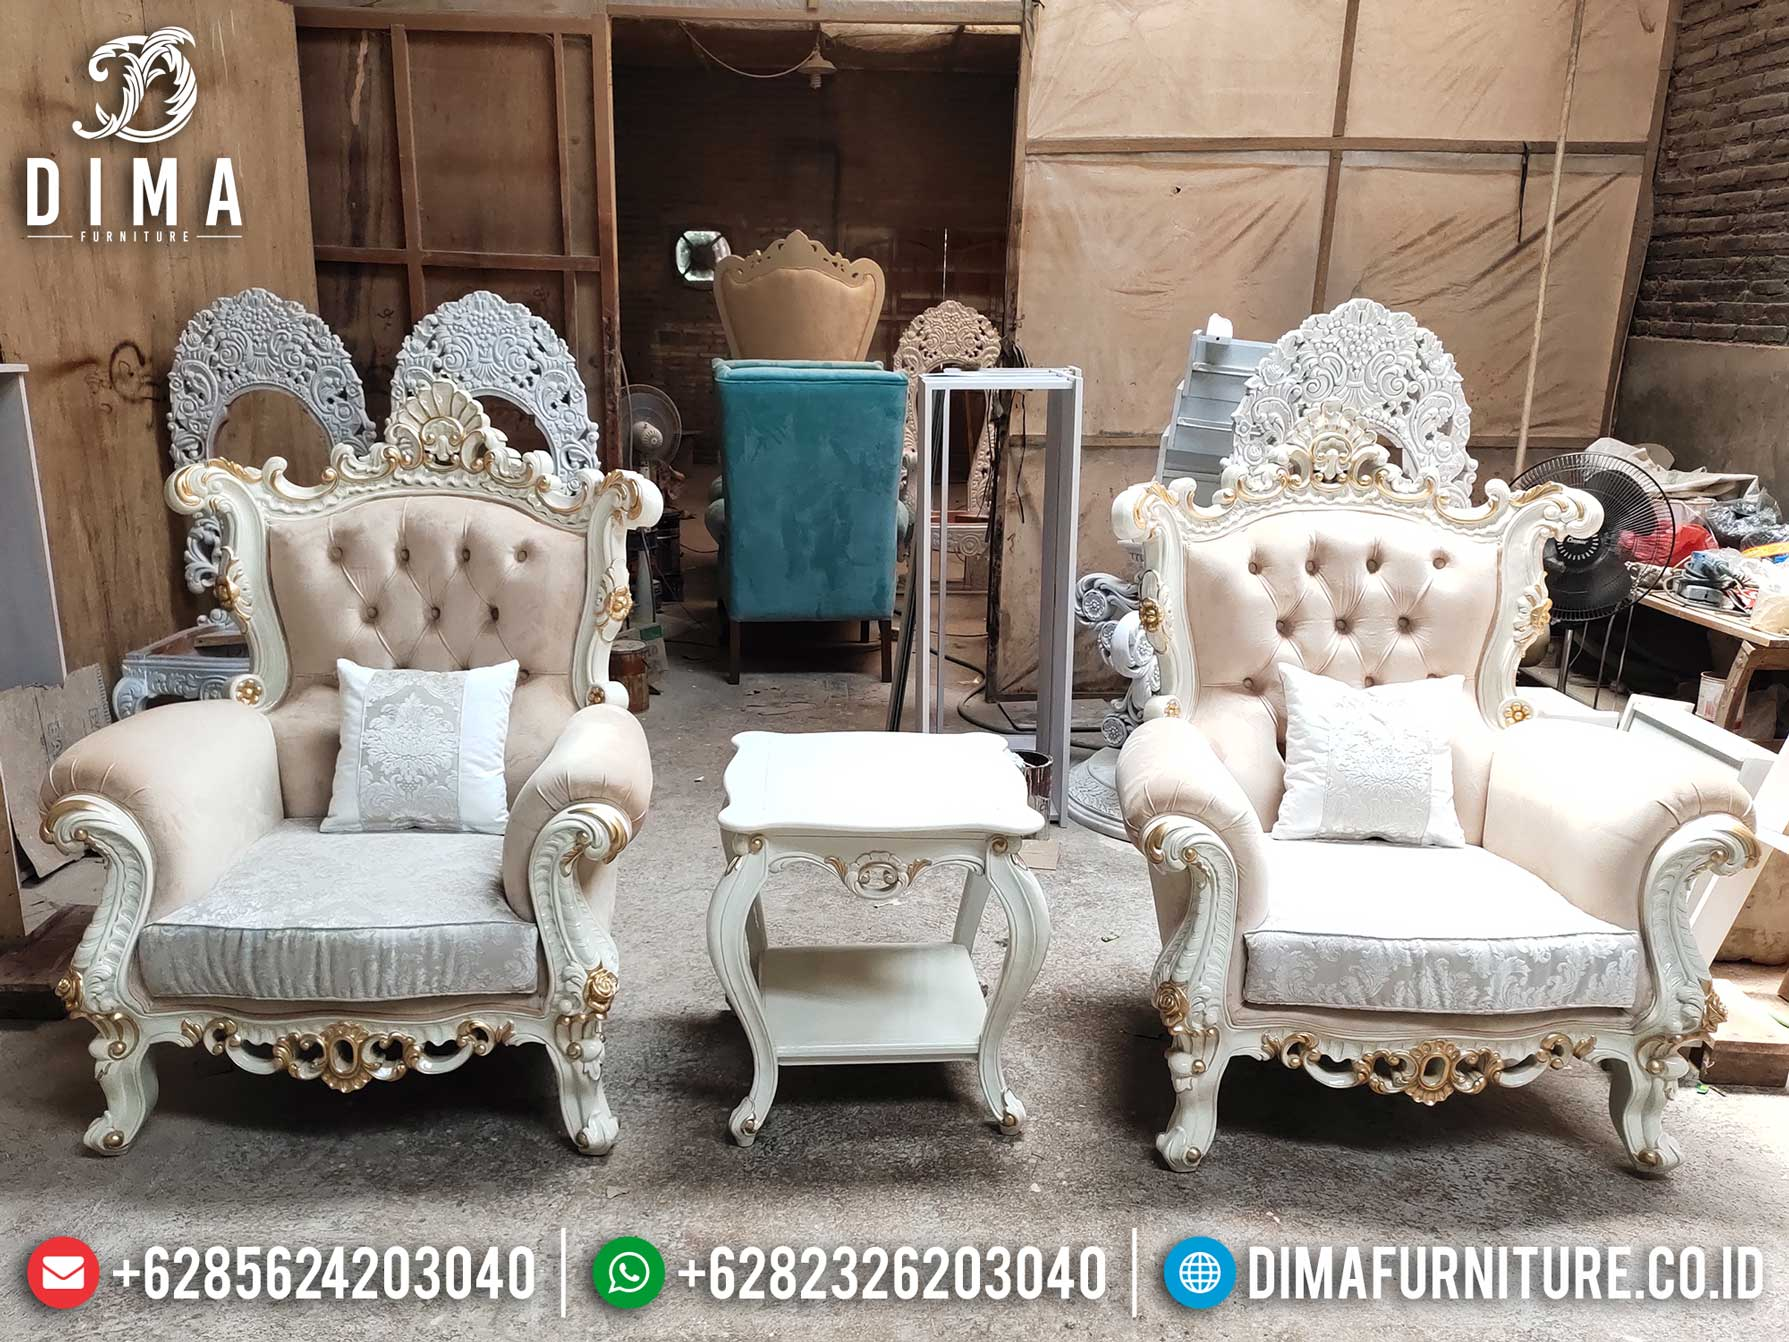 Desain Sofa Tamu Mewah Luxury Classic Single Seater New 2021 Furniture Jepara TTJ-1273